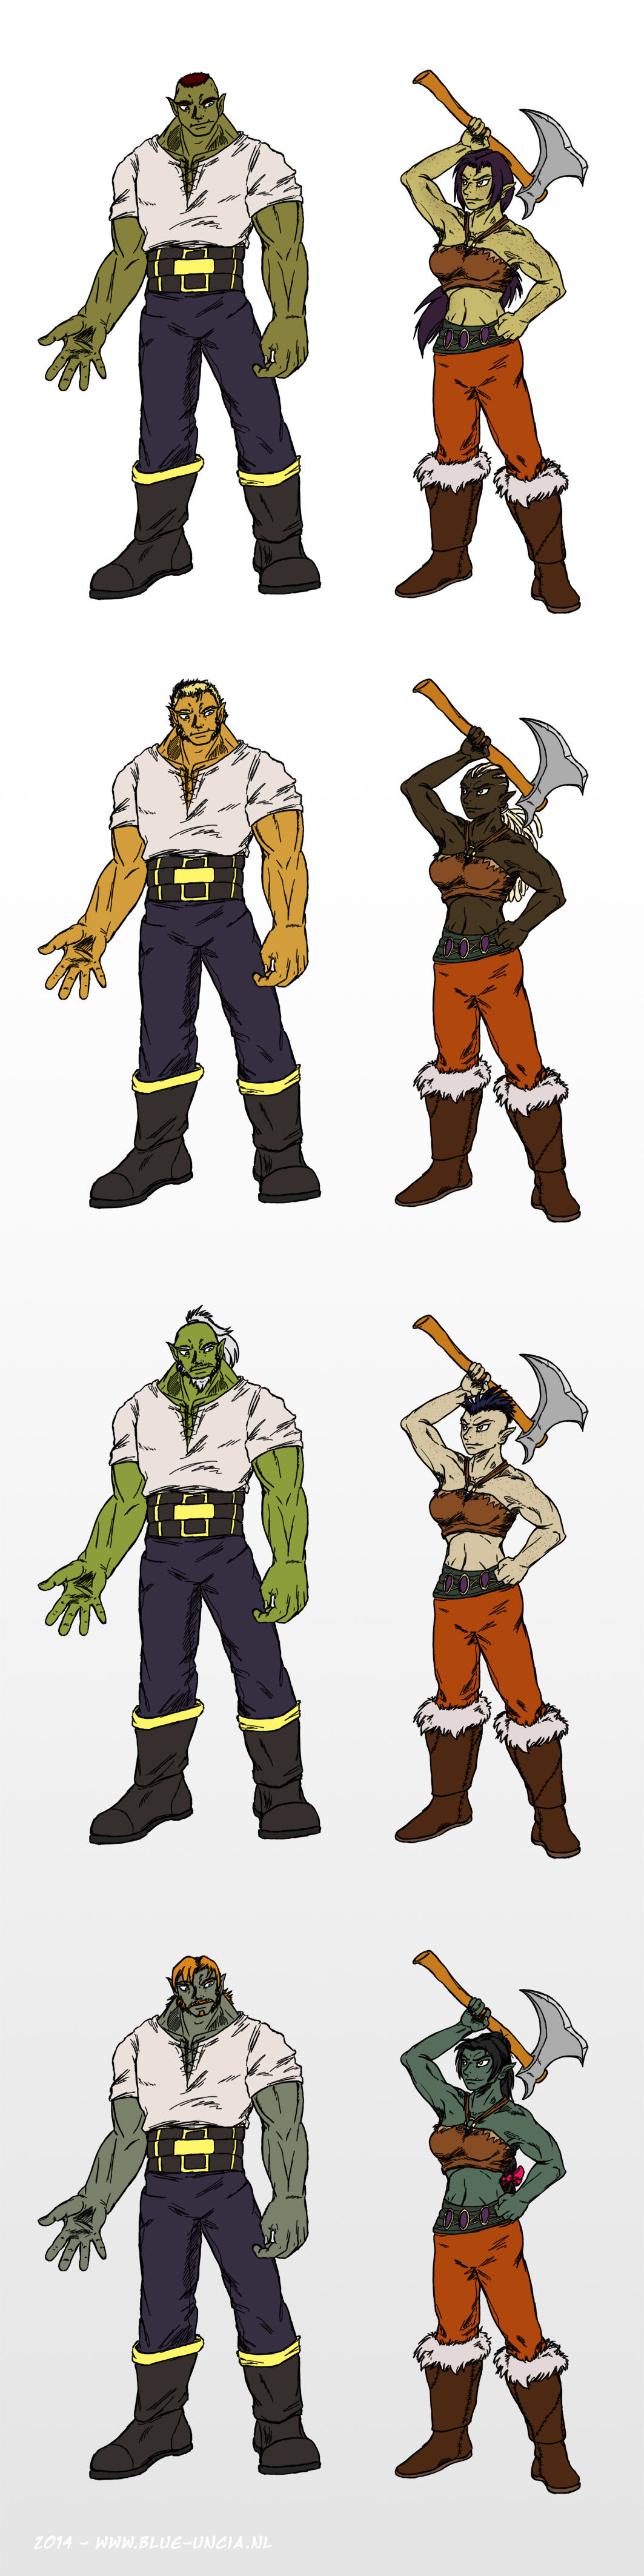 World of Warcraft sub-race suggestion: Half-orc by Blue-Uncia